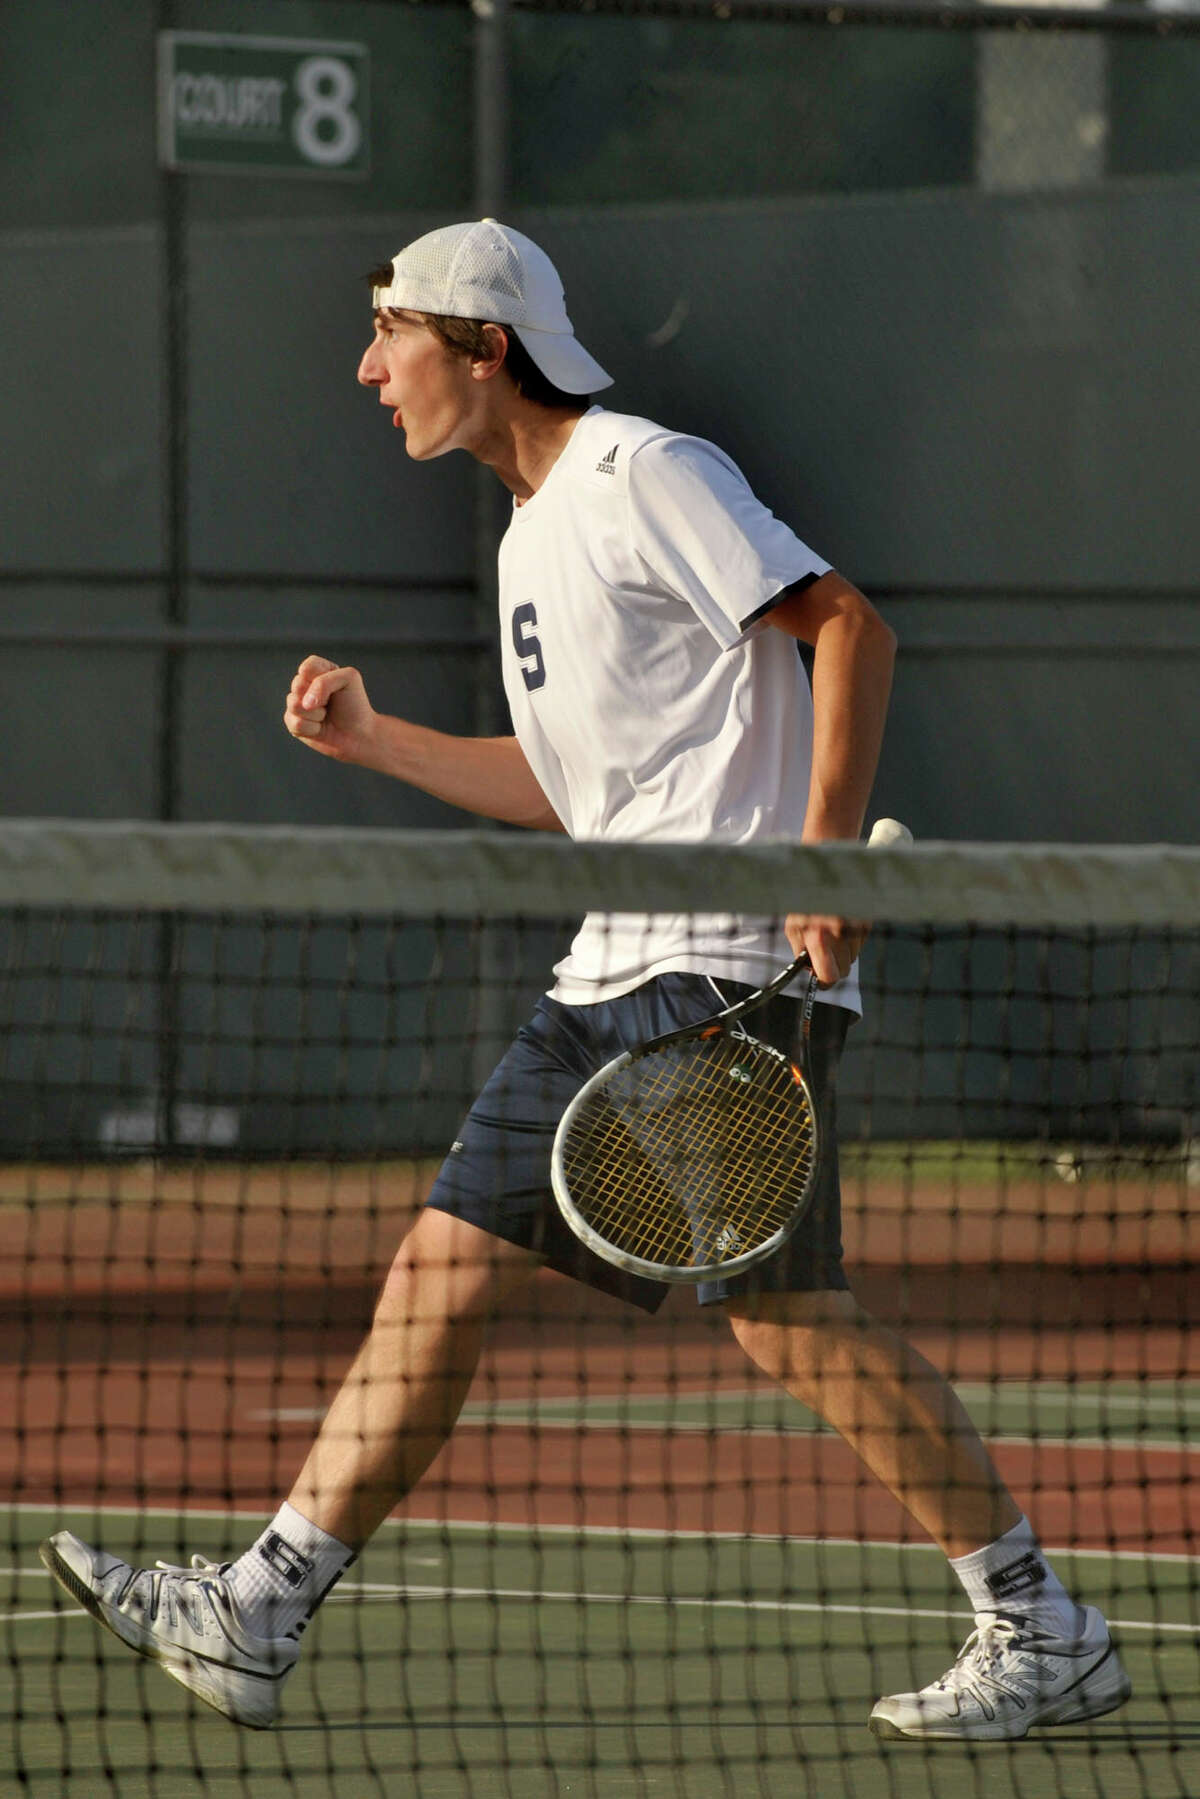 Staples' Connor Mitnick celebrates after beating Ridgefield's Tal Nizan and Ryan Brucato during their FCIAC championship doubles tennis match at Wilton High School in Wilton, Conn., on Thursday, May 29, 2014. Staples won, 4-3.